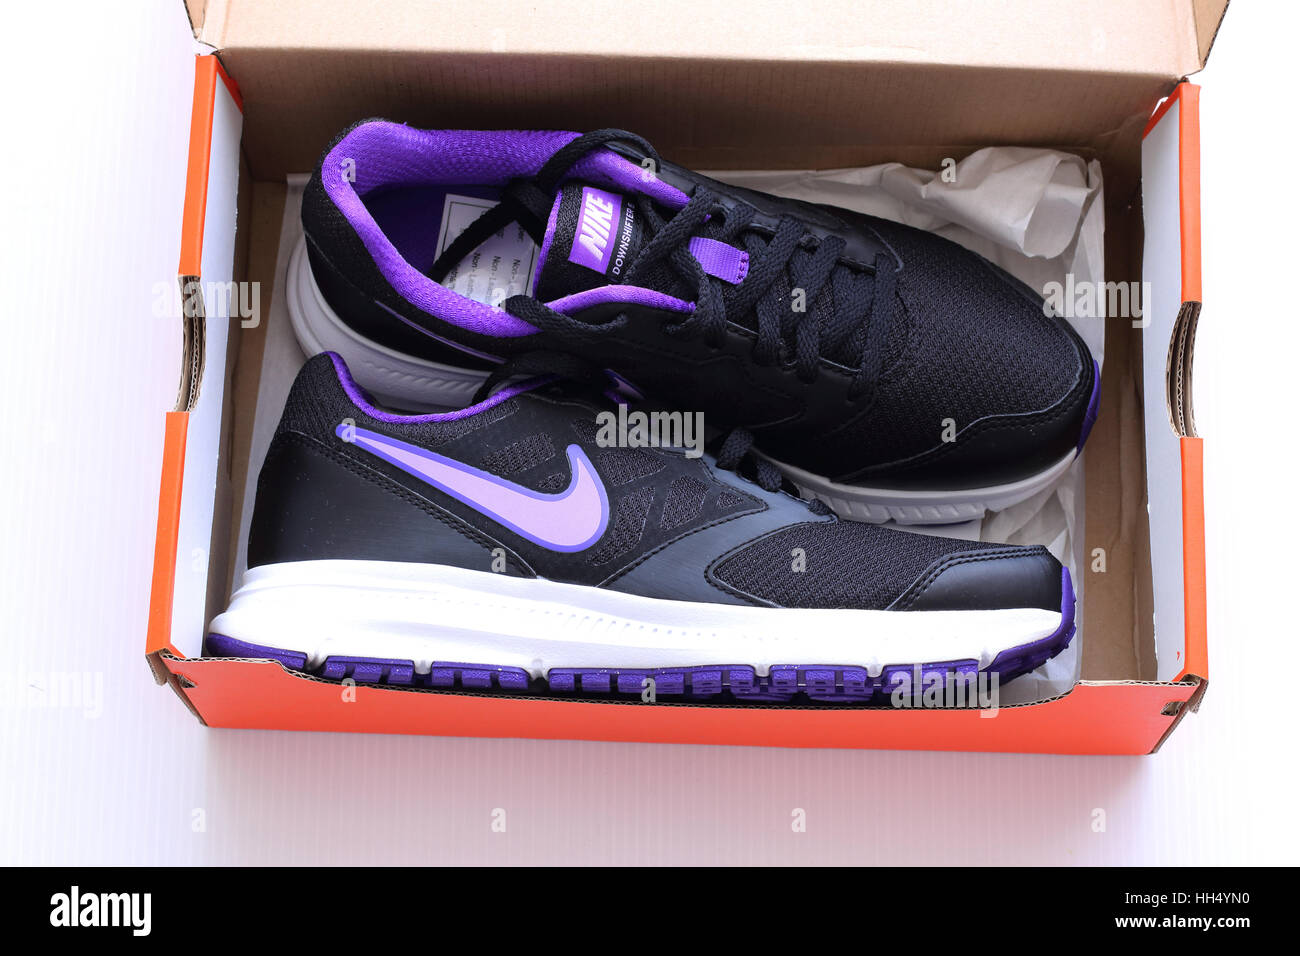 a10d35ecee1a Close up of Nike shoes Stock Photo  131031292 - Alamy